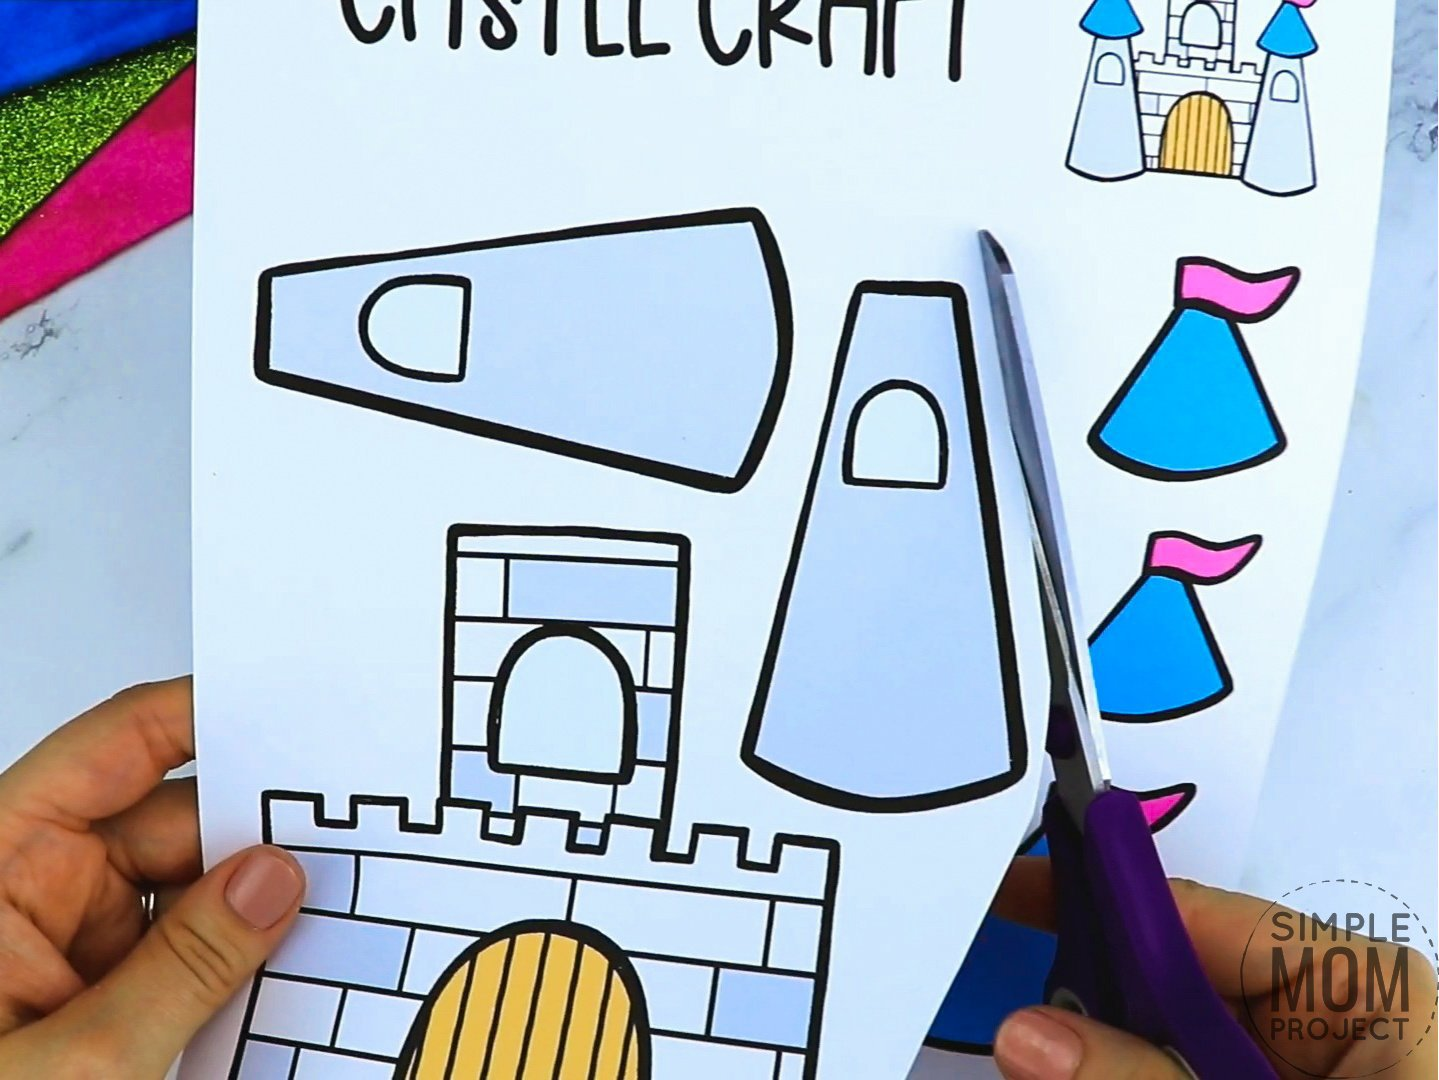 Free printable princess castle coloring page template for kids, preschoolers and kindergartners